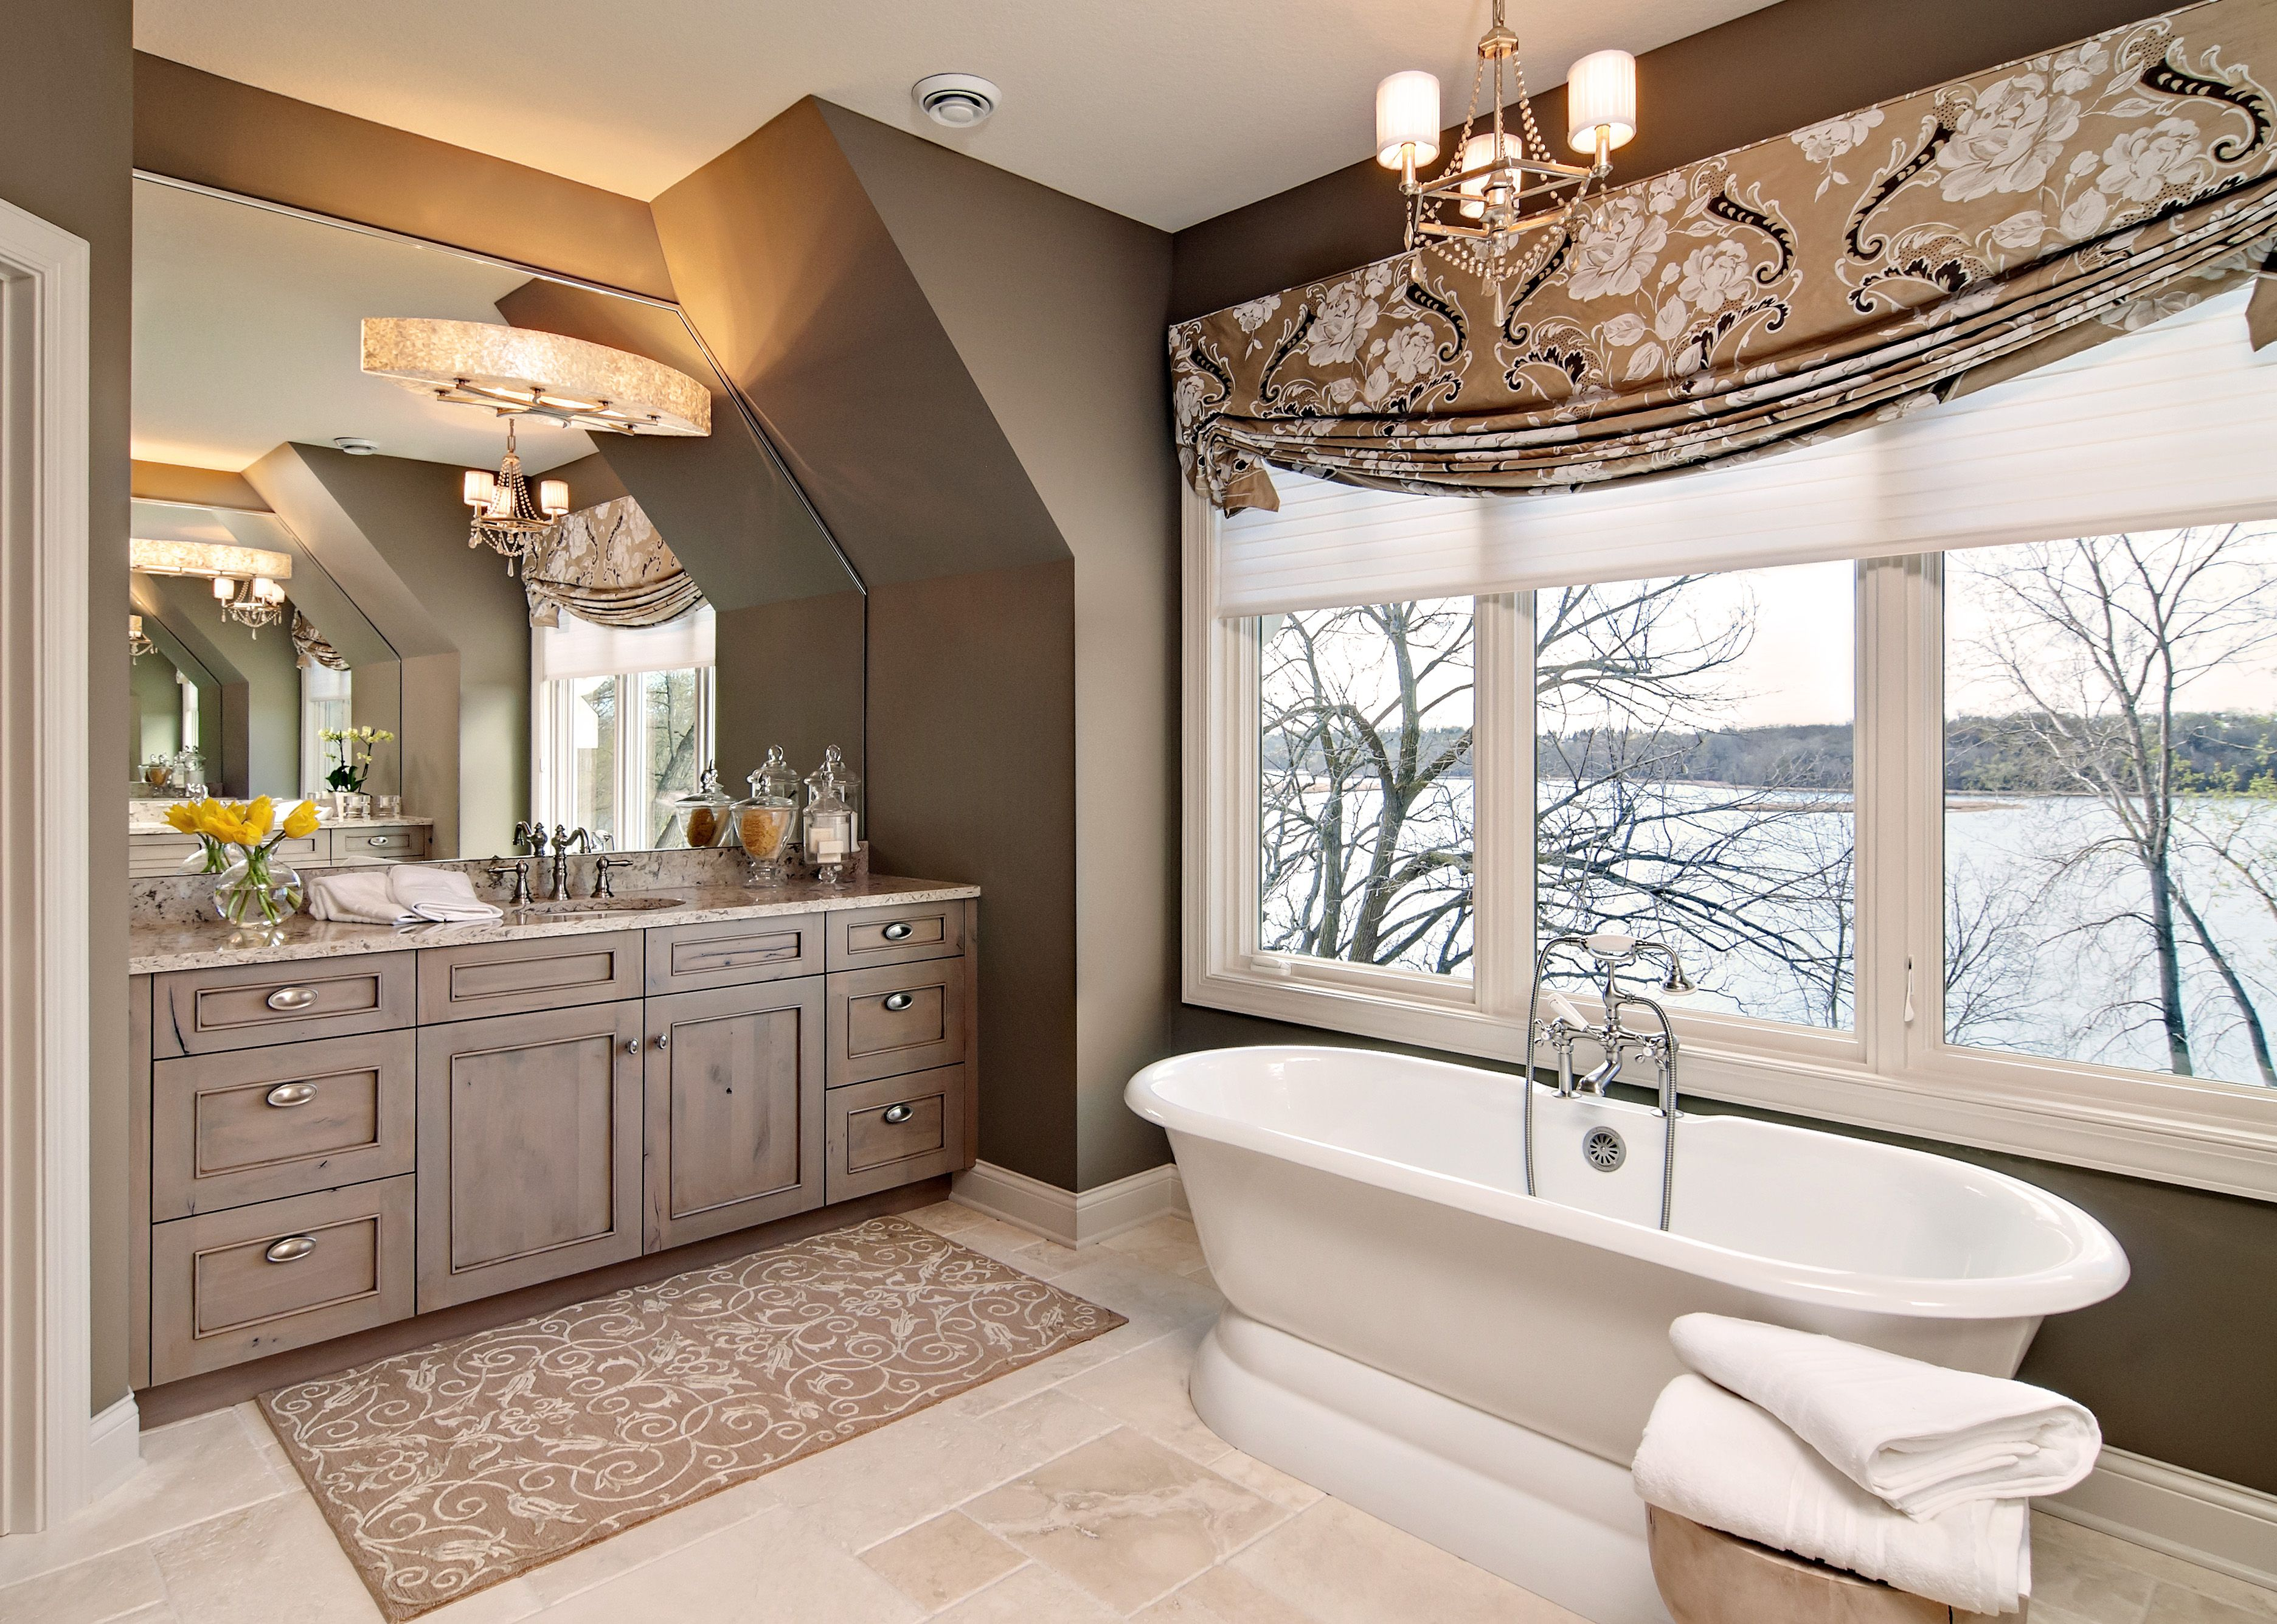 Luxury Bathroom With Freestanding Tub And Bright Windows Overlooking Lake.  Designed By Mingle   Minneapolis Based Public Showroom.